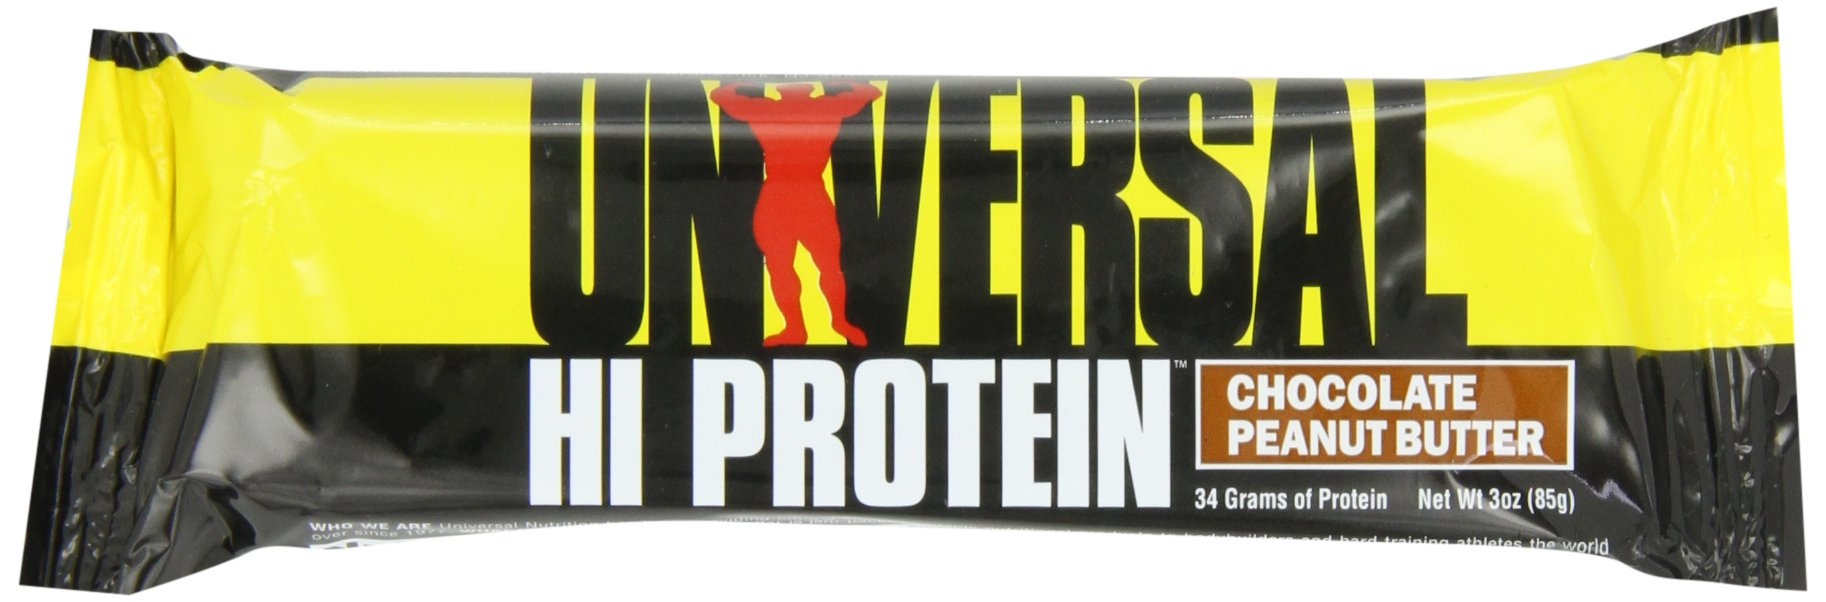 Hi Protein Bar - 34 g of Protein - 1 g of Sugar - 6.5g of Fat - Delicious Taste - Peanut Butter 85g bar Box of 16 by Universal Nutrition